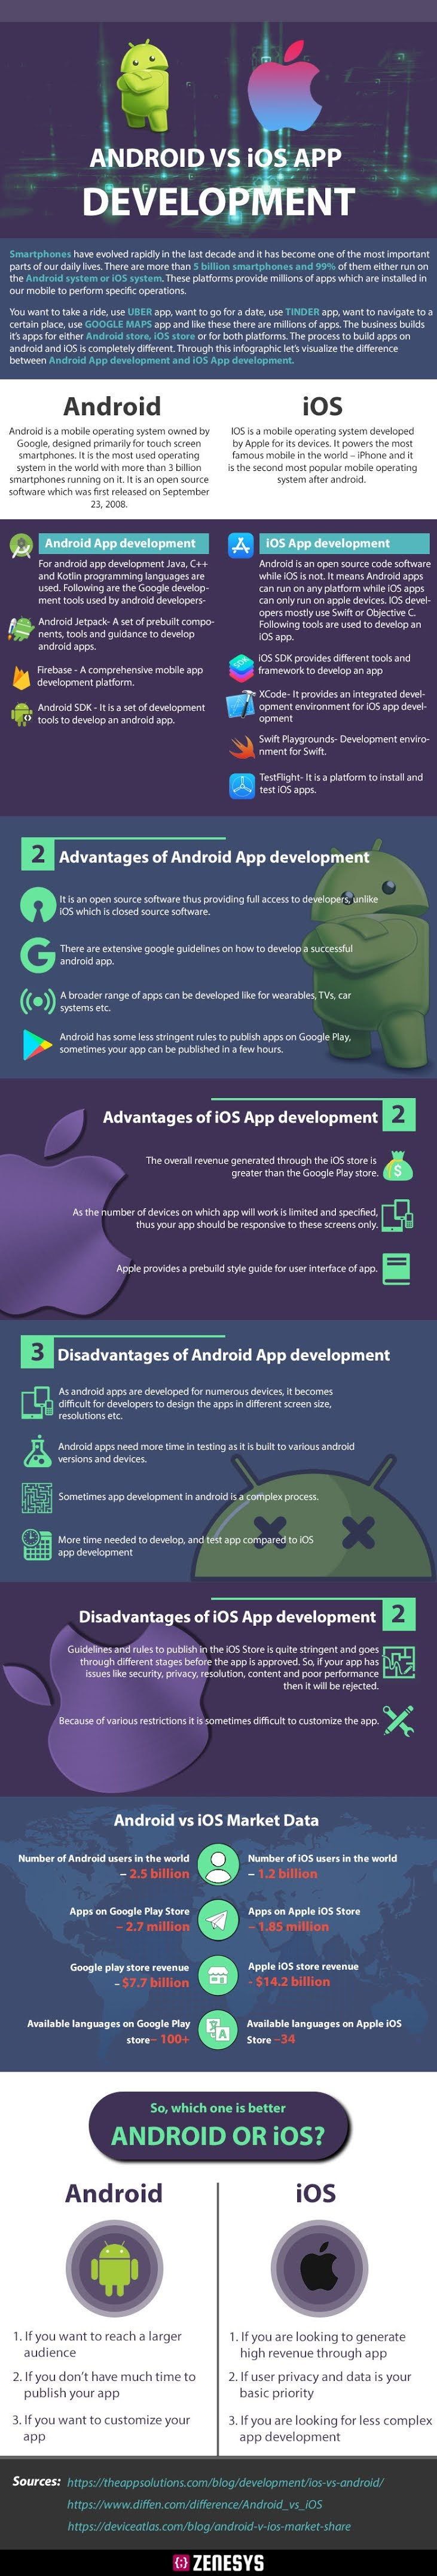 Android vs iOS App Development #Infographic